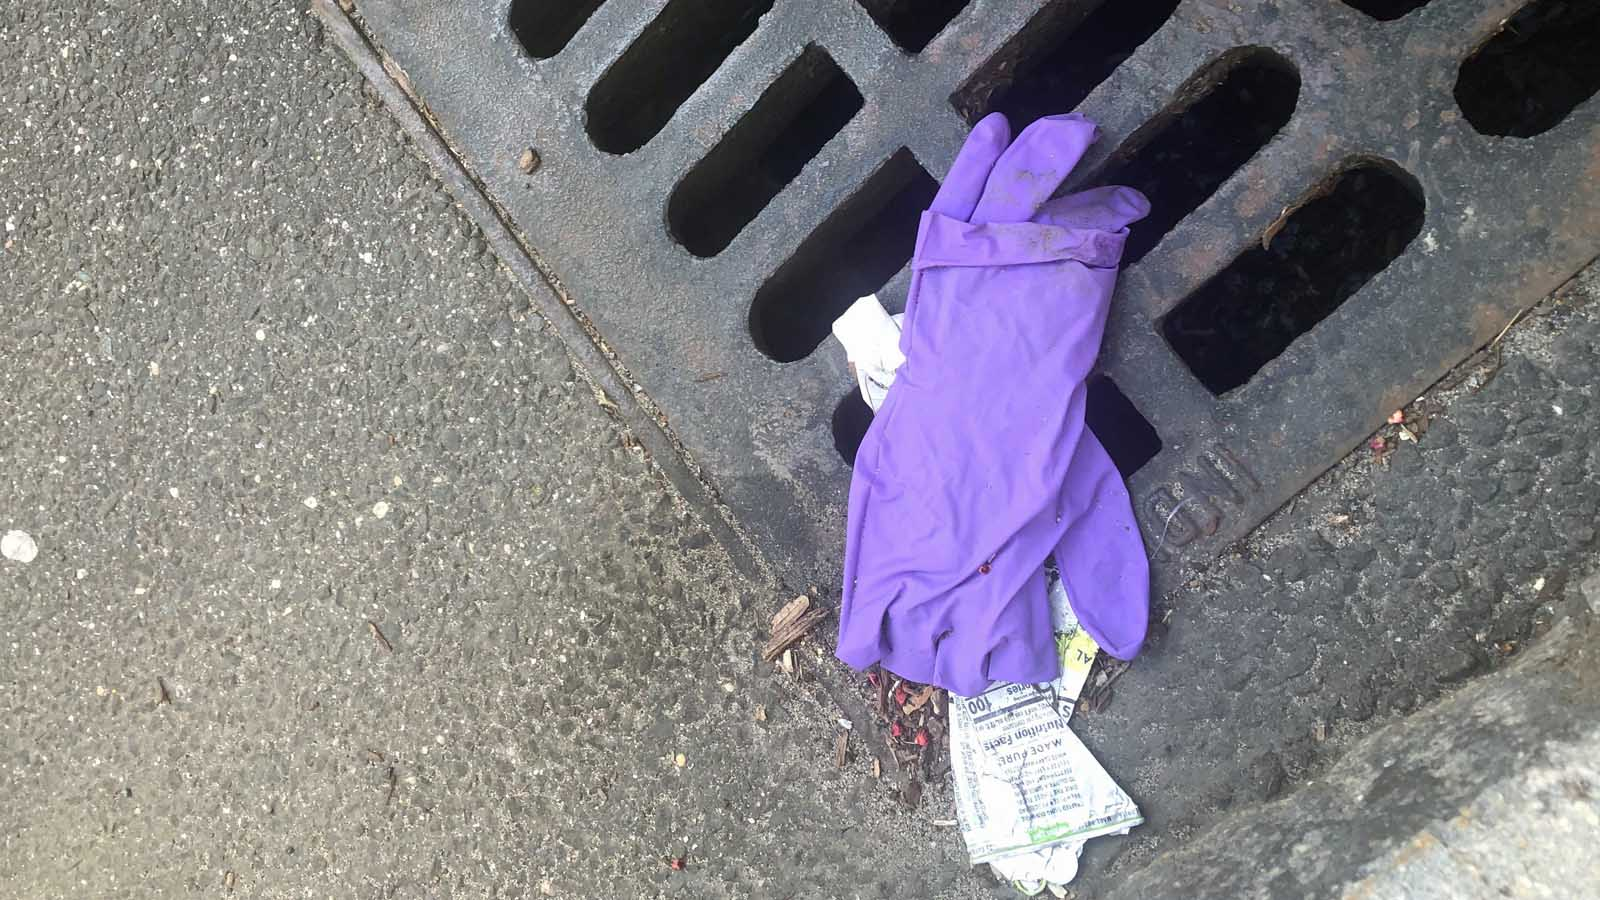 Keep America Beautiful: Watch Where You Toss Used Wipes and Gloves!